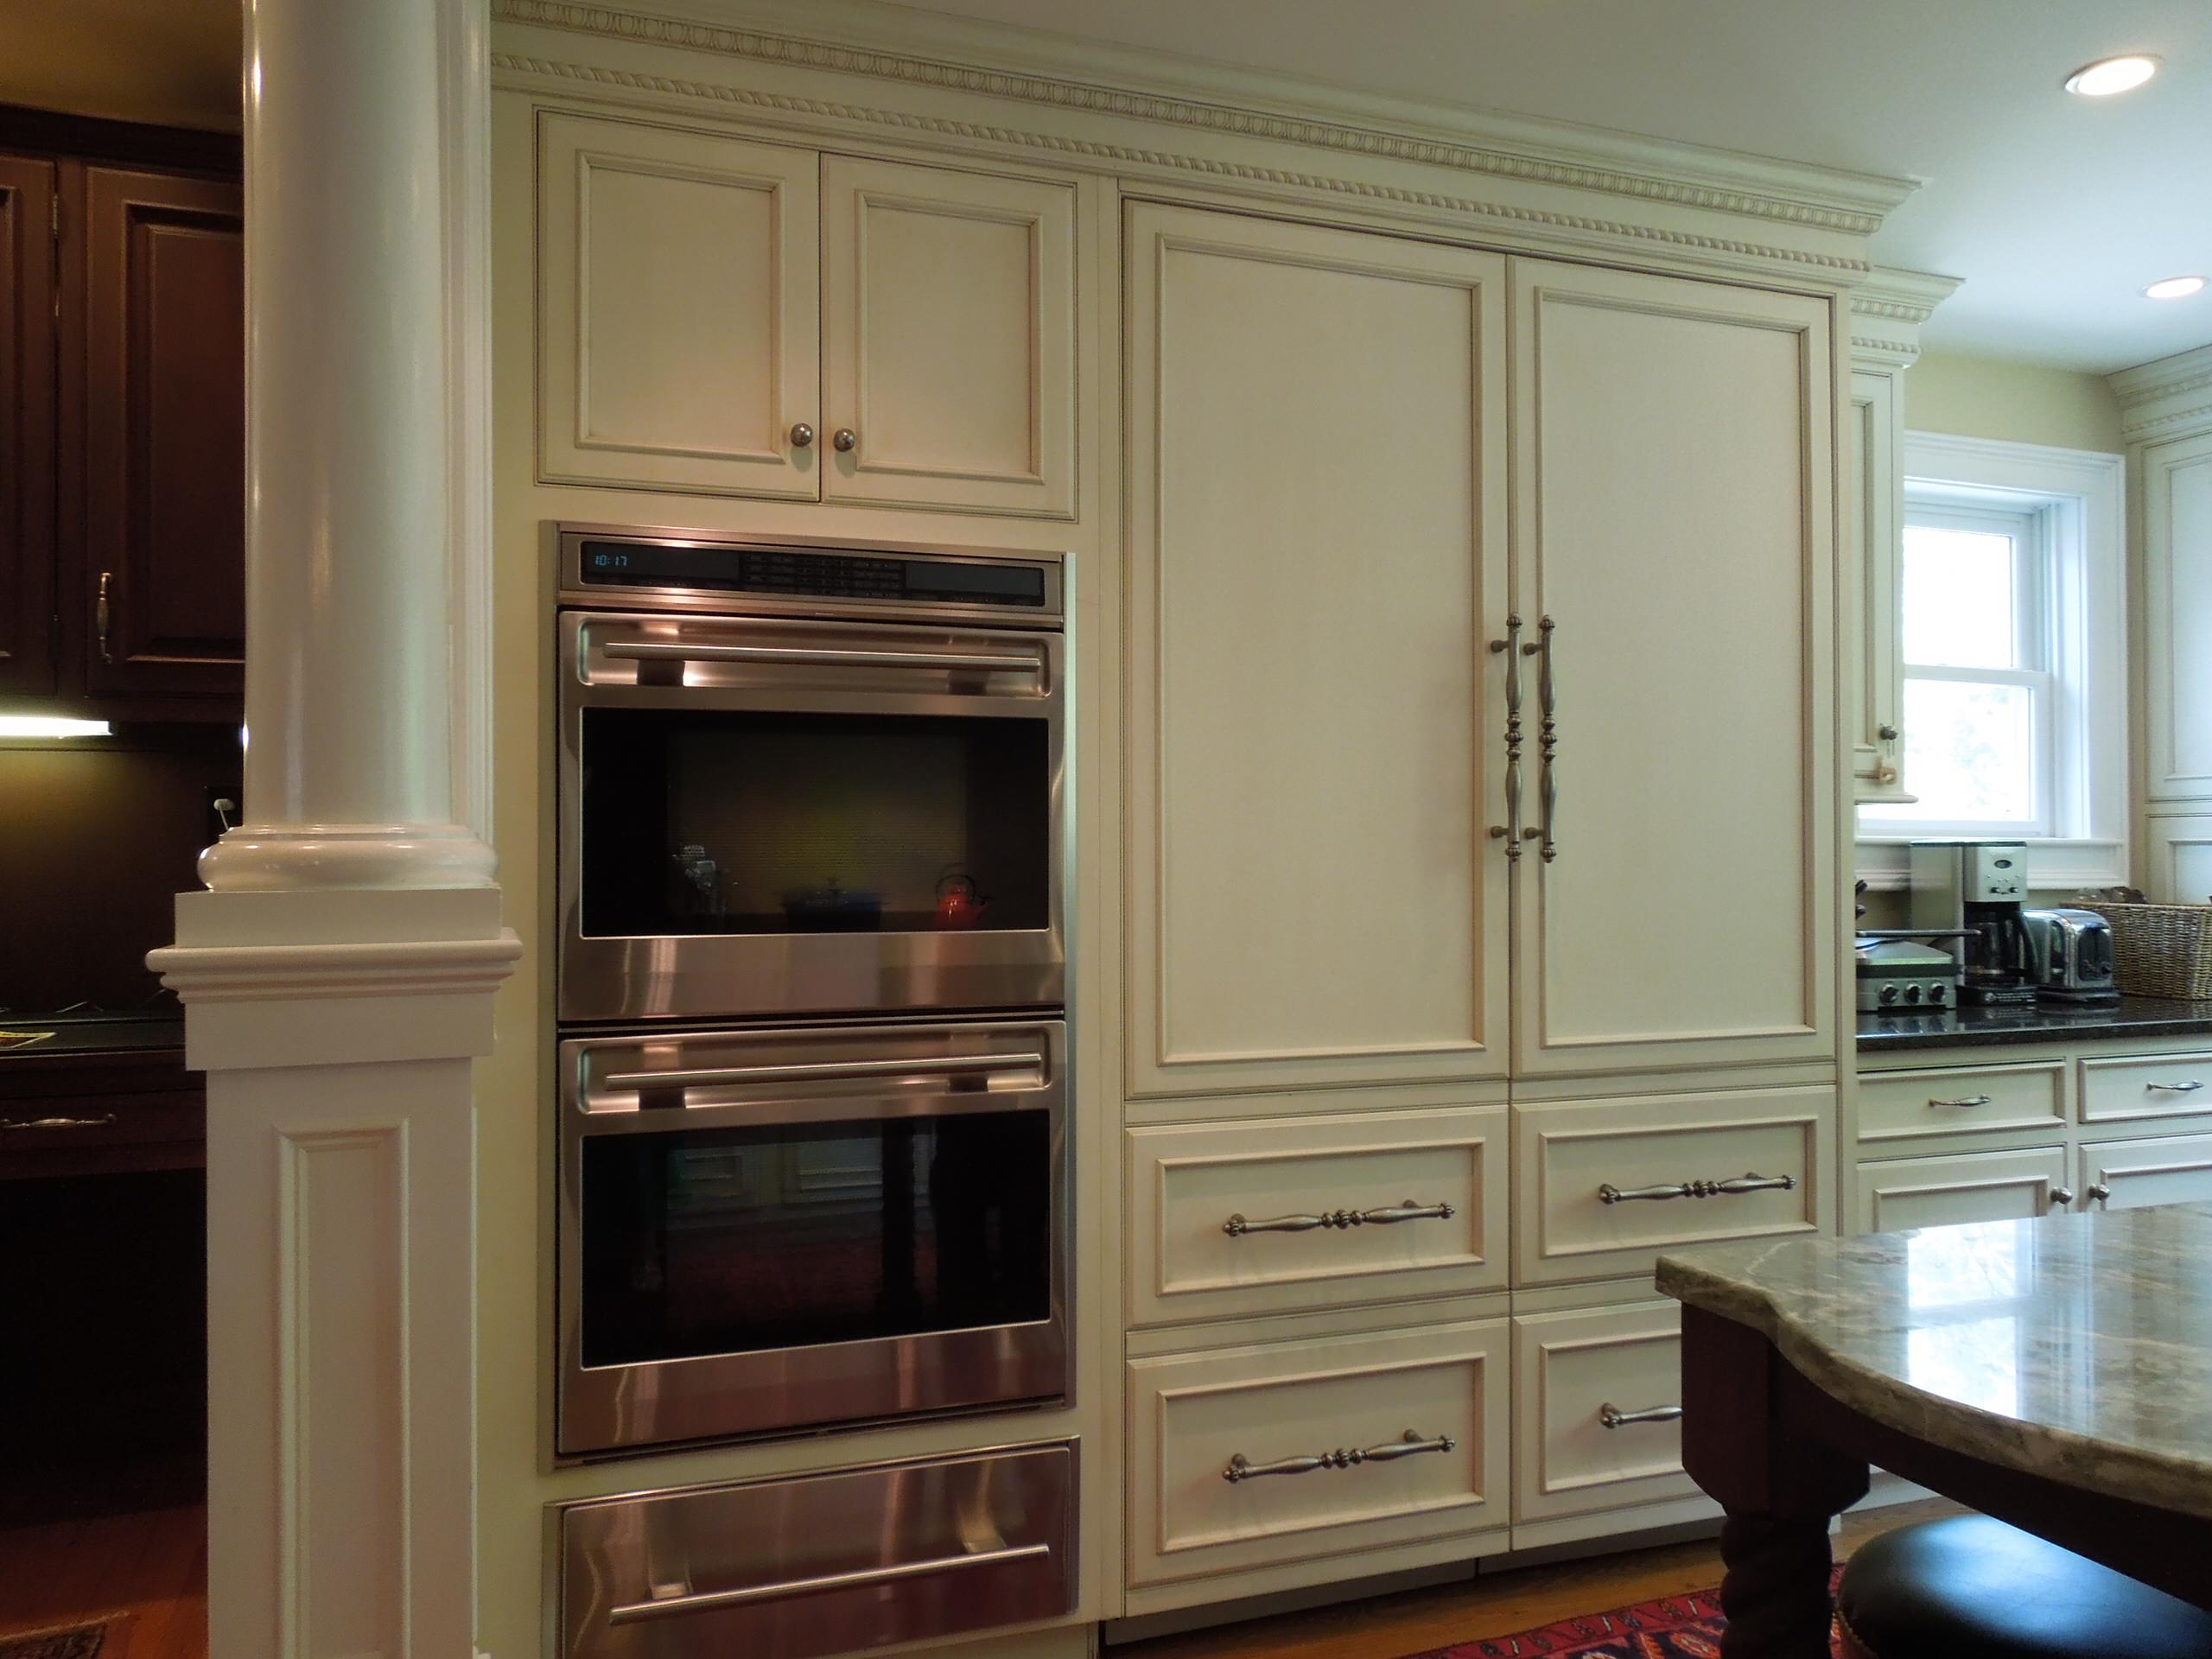 Paneled appliances and moulding...